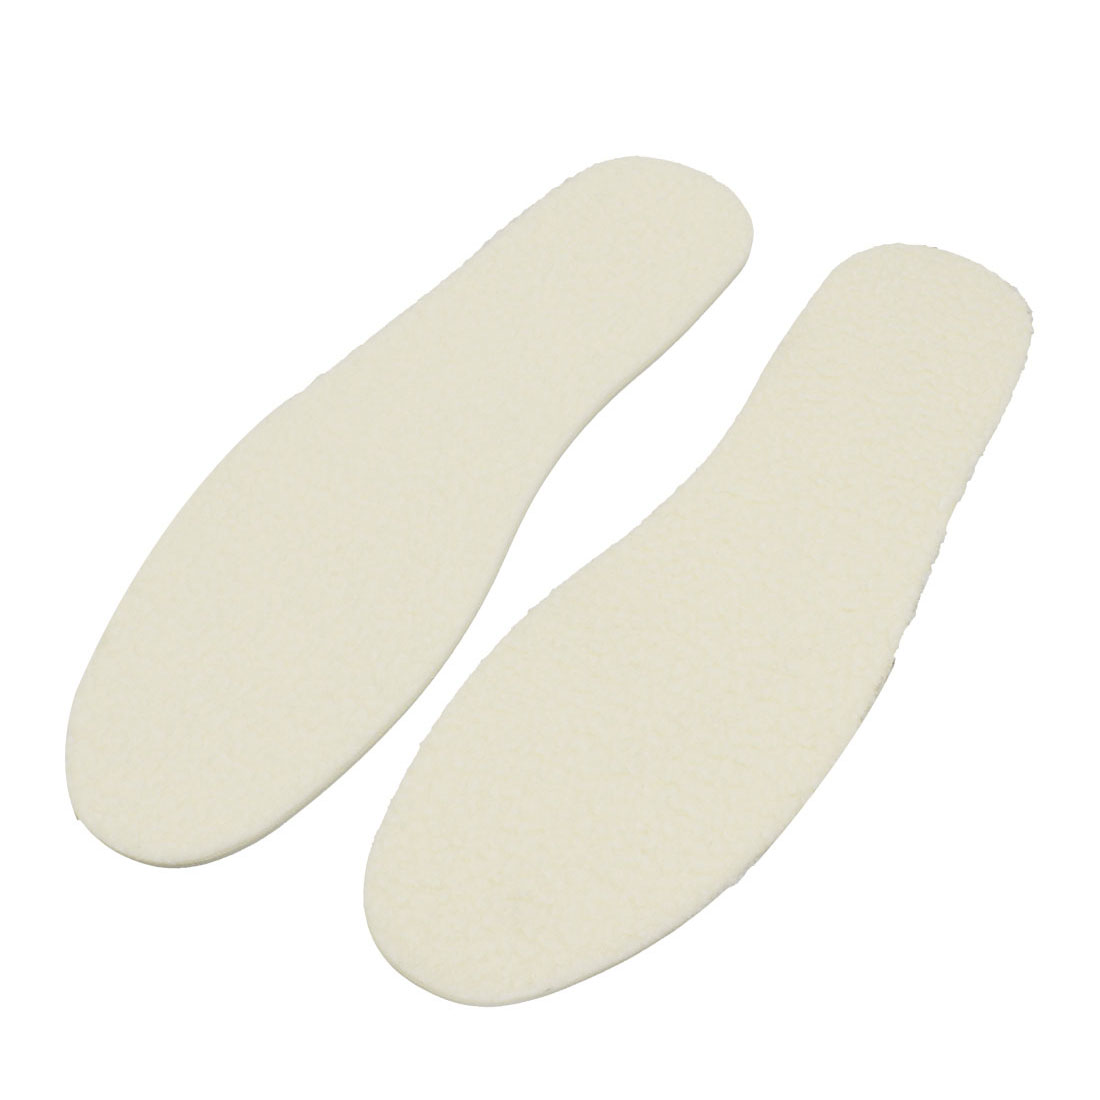 Men Winter Warm Plush Shoes Boots Insoles Insert Pad Pair Off White Size 44.5